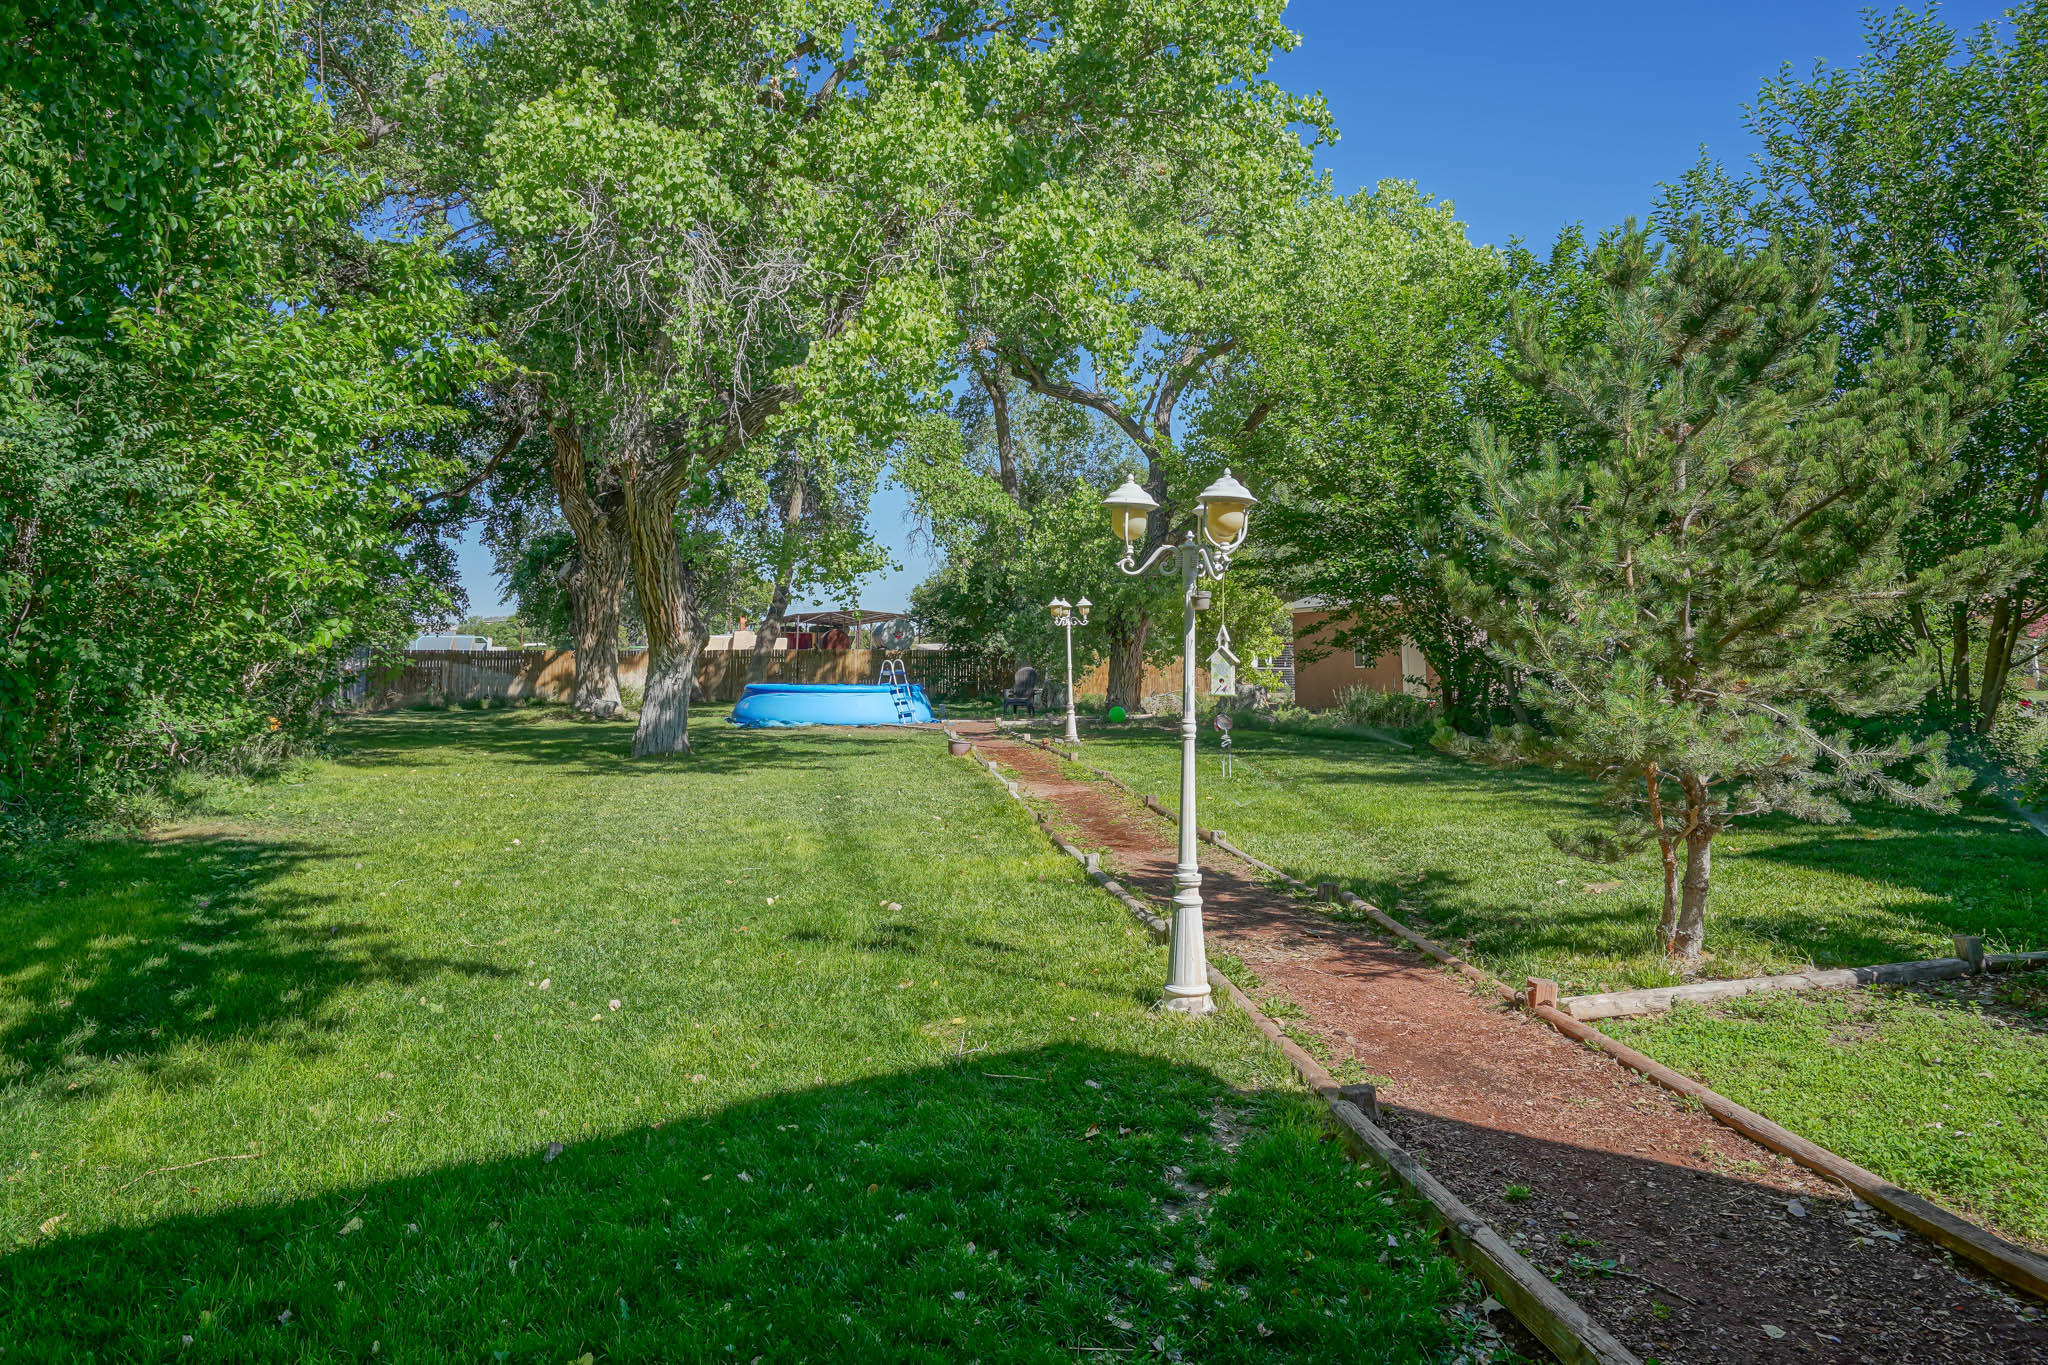 Have you been looking to get away from the city? This beautiful custom home in the heart of Los Lunas sits on .66 acres has what you are looking for. Built-in ''Nichos'' throughout the home, soaring ceilings and lots of natural light are just a few of the extras your new home has to offer. Enjoy cooking your favorite meals in the chef's dream kitchen with sile stone countertops and stainless Steel Appliances! The master bedroom opens up to a stunning park-like back yard with huge mature trees providing ample shade & a private jacuzzi hot tub. Sprinklers & drip systems are on an Irrigation well. A real gem in the heart of Los Lunas! There is also a detached workshop and four-car garage for extra storage and lots of room for toys! Take a virtual walkthrough tour or schedule a private showing